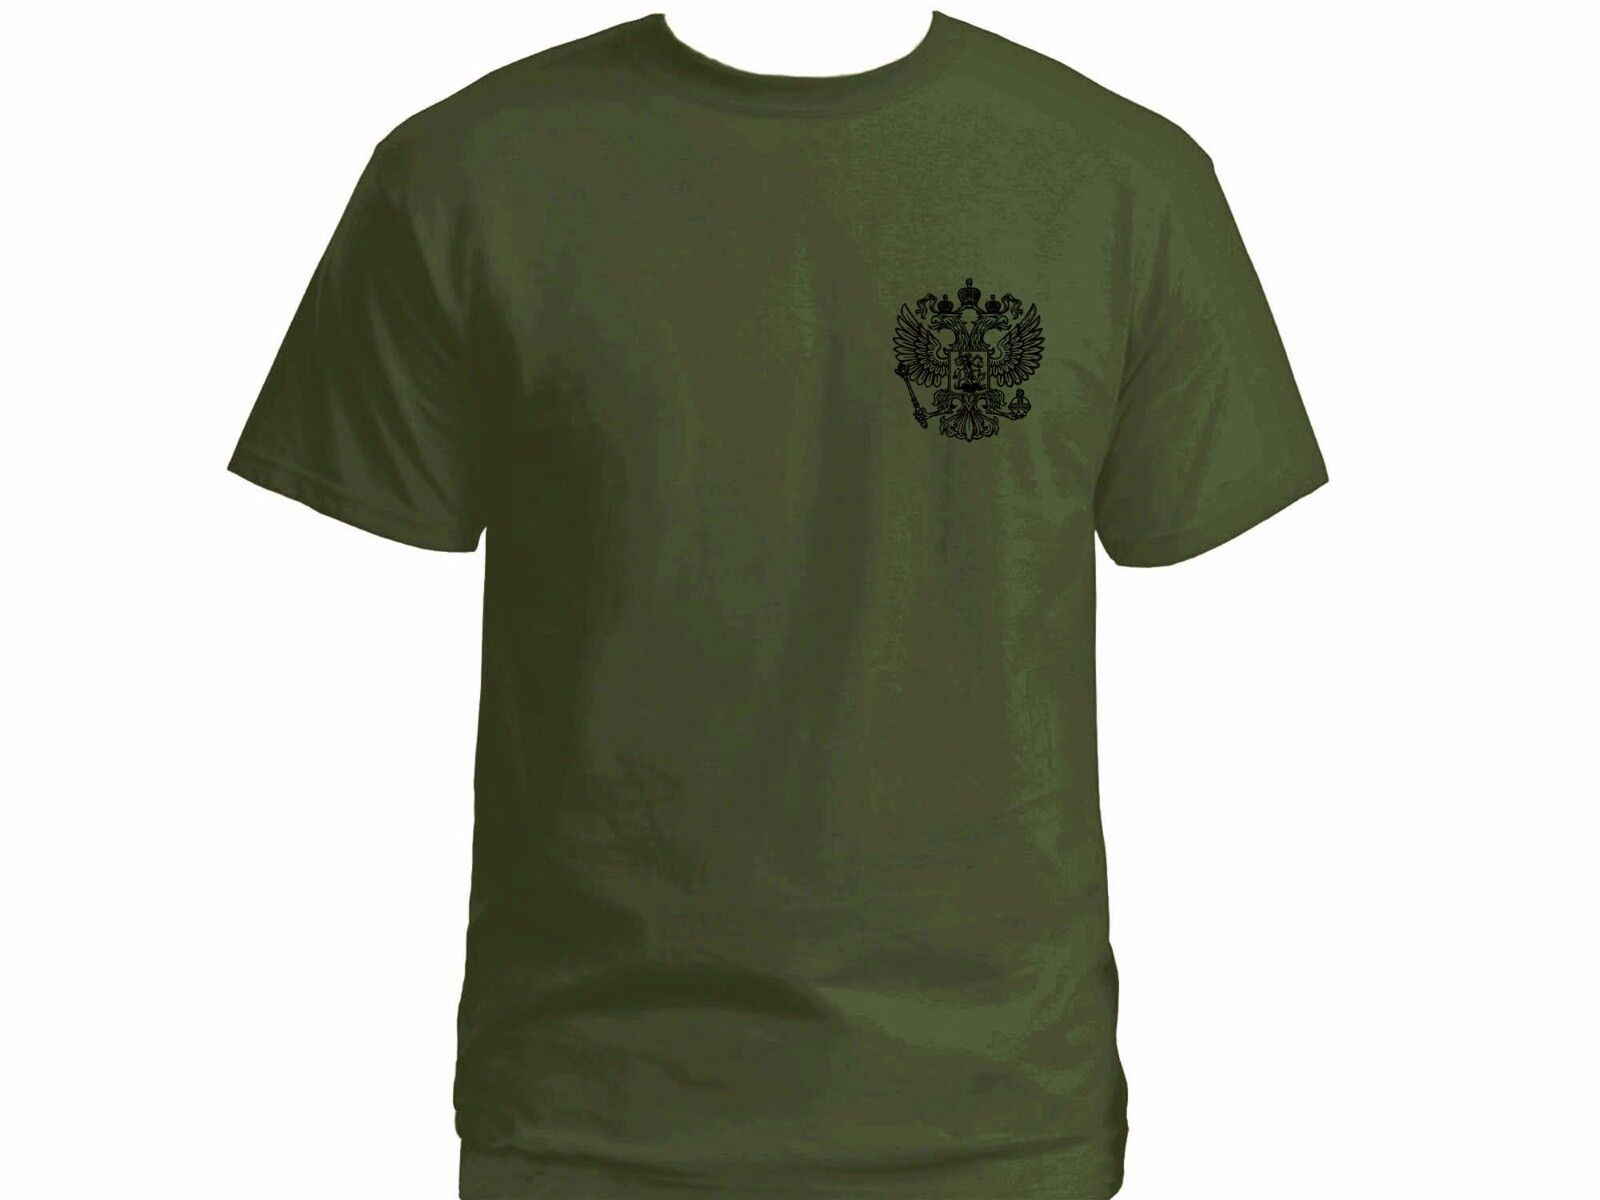 Russian coat of arms two headed Roman eagle army green 100% cotton t-shirt